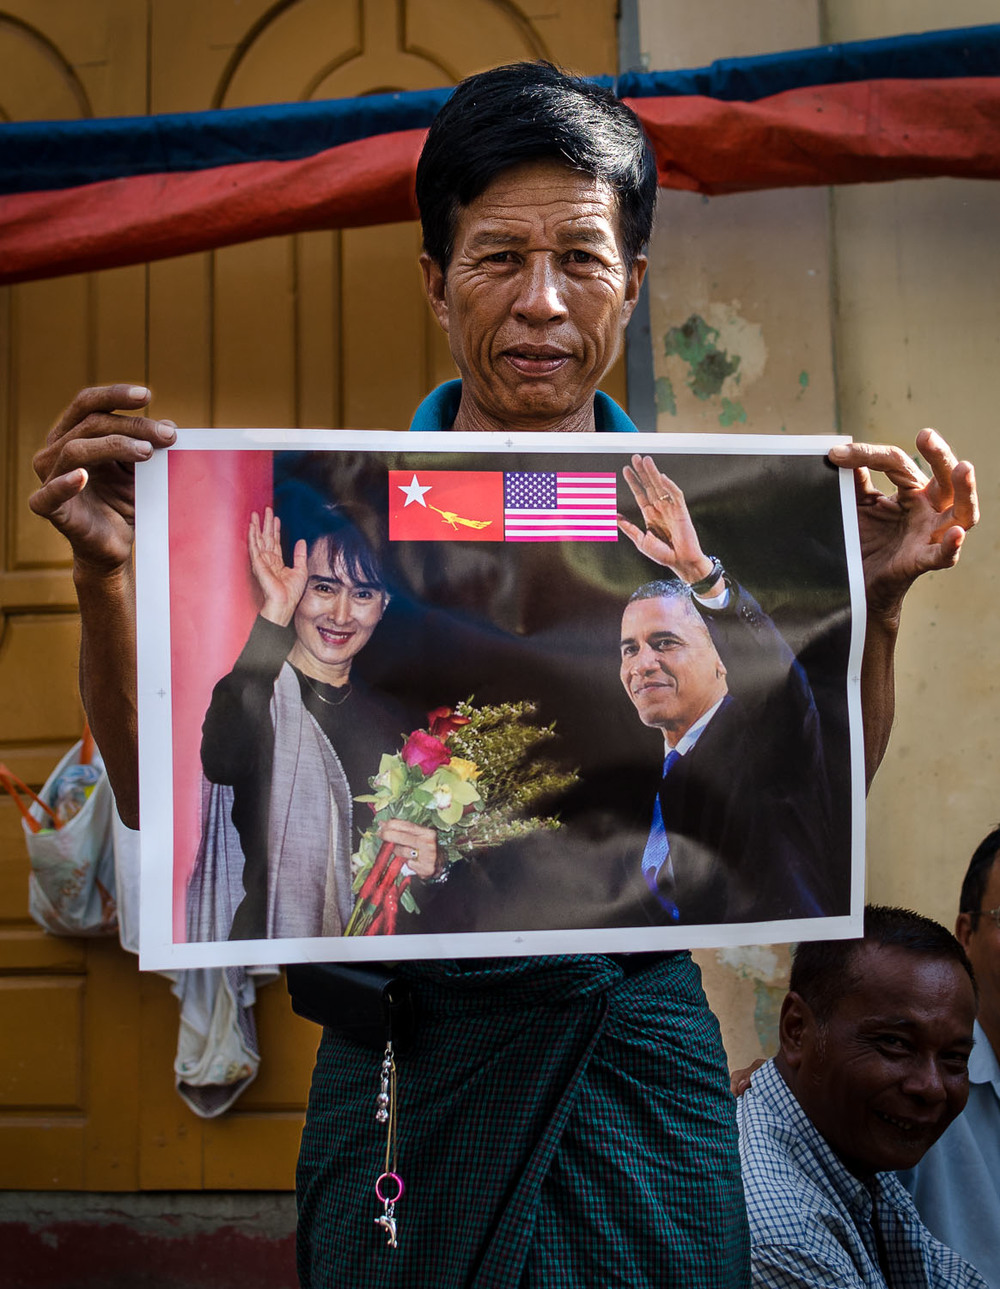 A local taxi driver shows his new poster of Aung San Suu Kyi and Barack Obama the day after his historic trip to Yangon in November 2012.